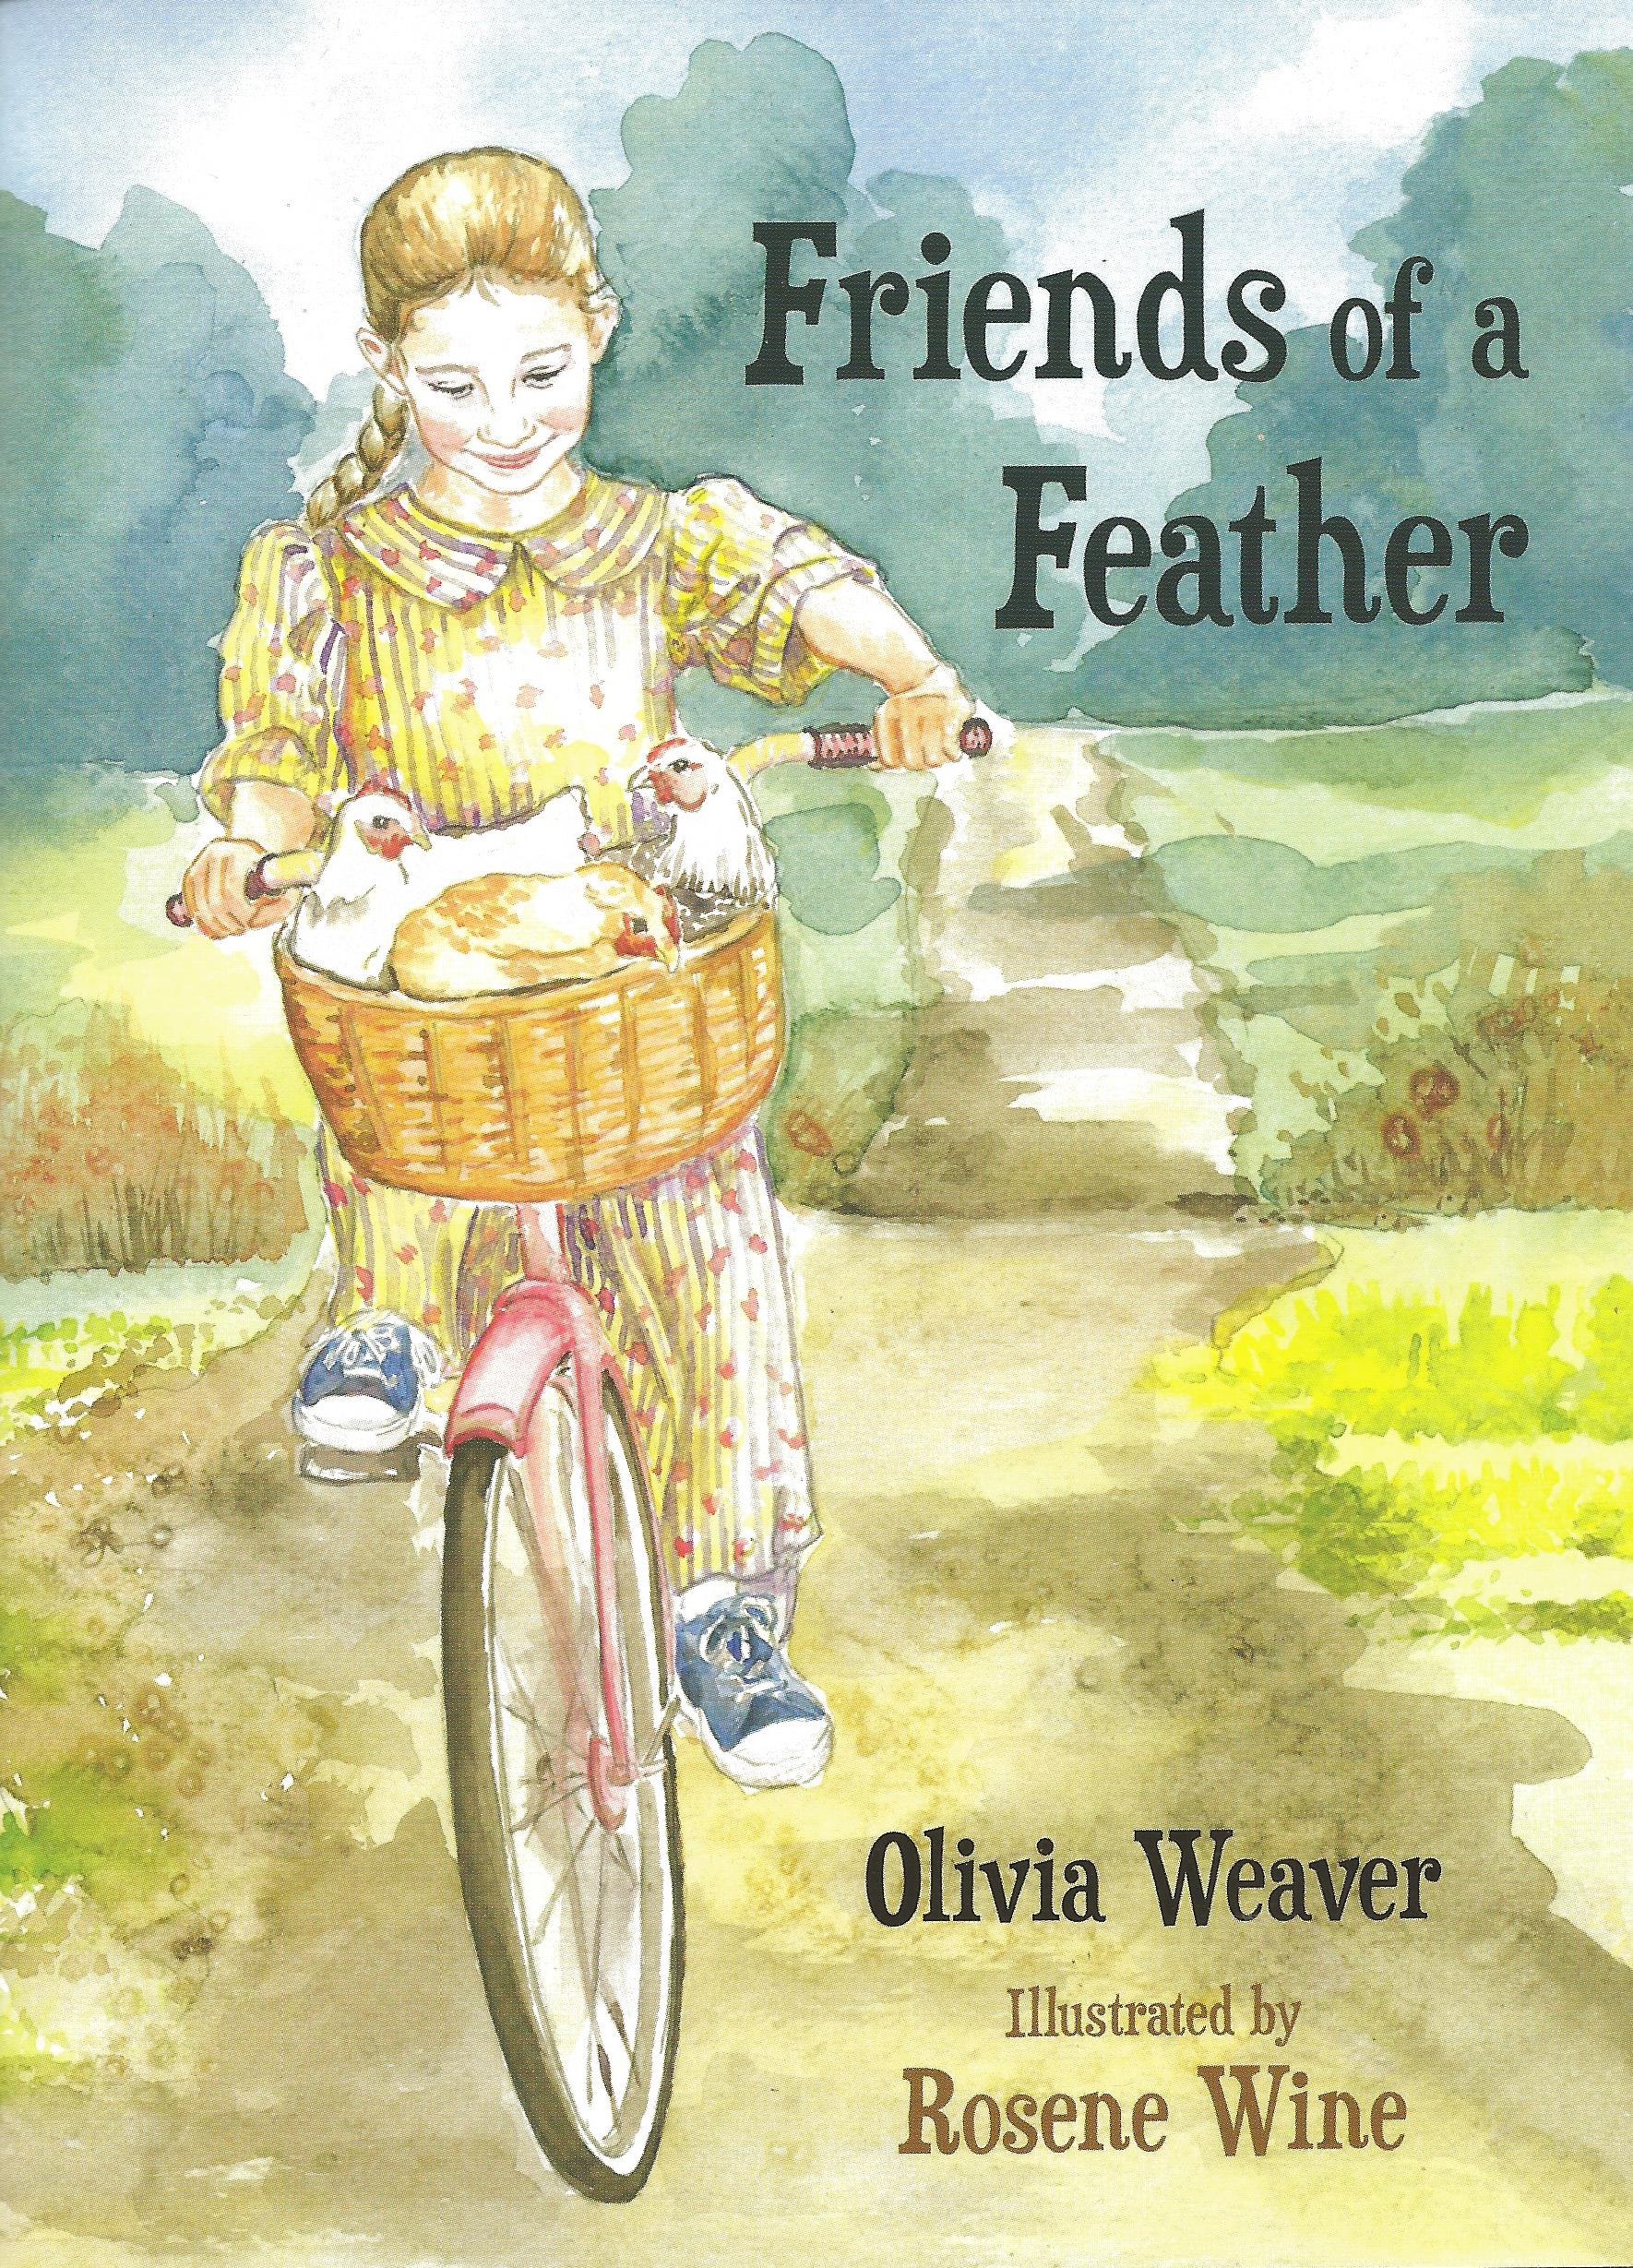 FRIENDS OF A FEATHER Olivia Weaver